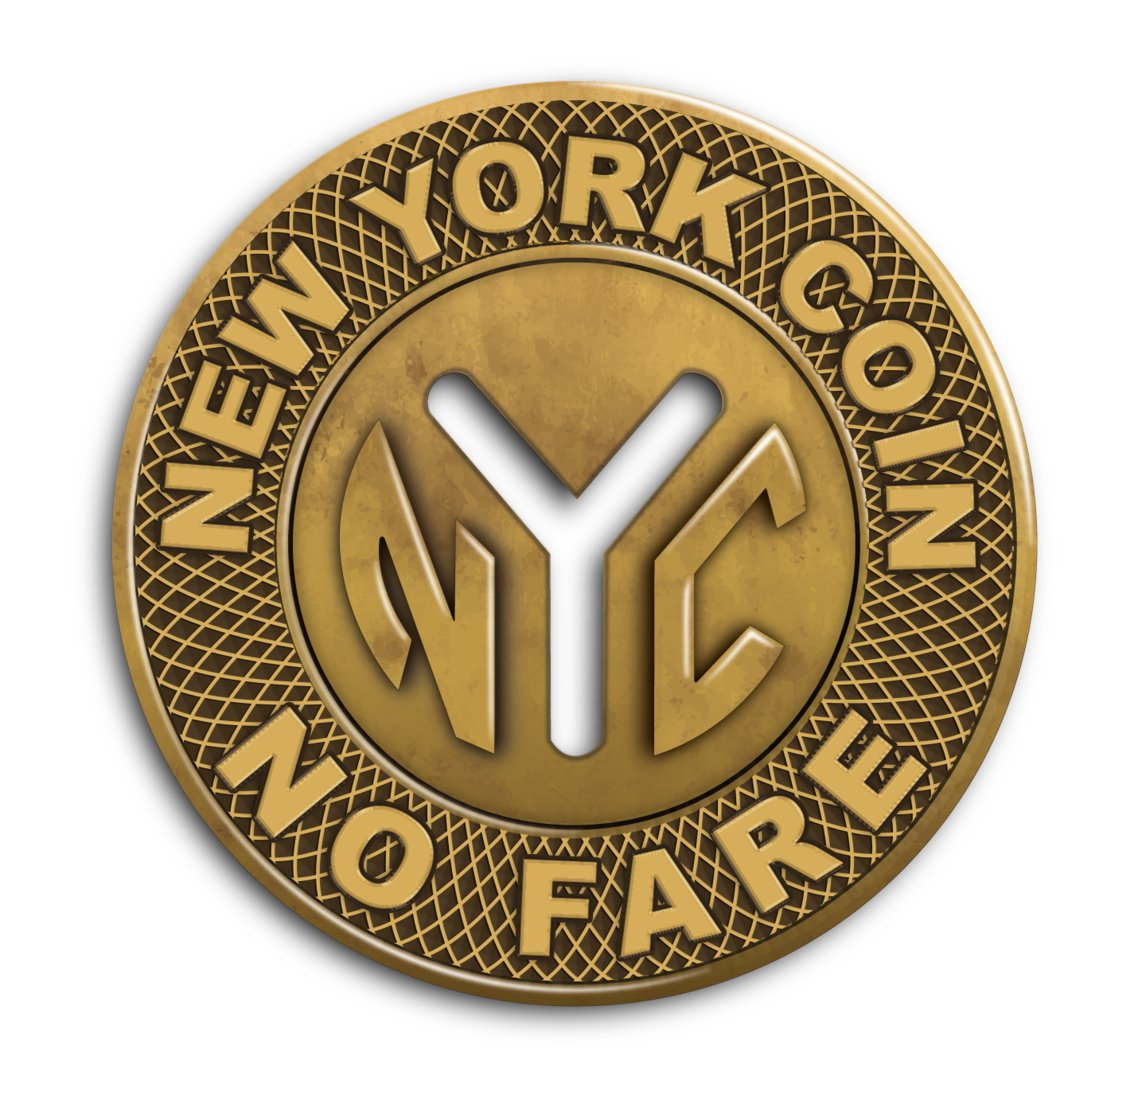 new york coin cryptocurrency